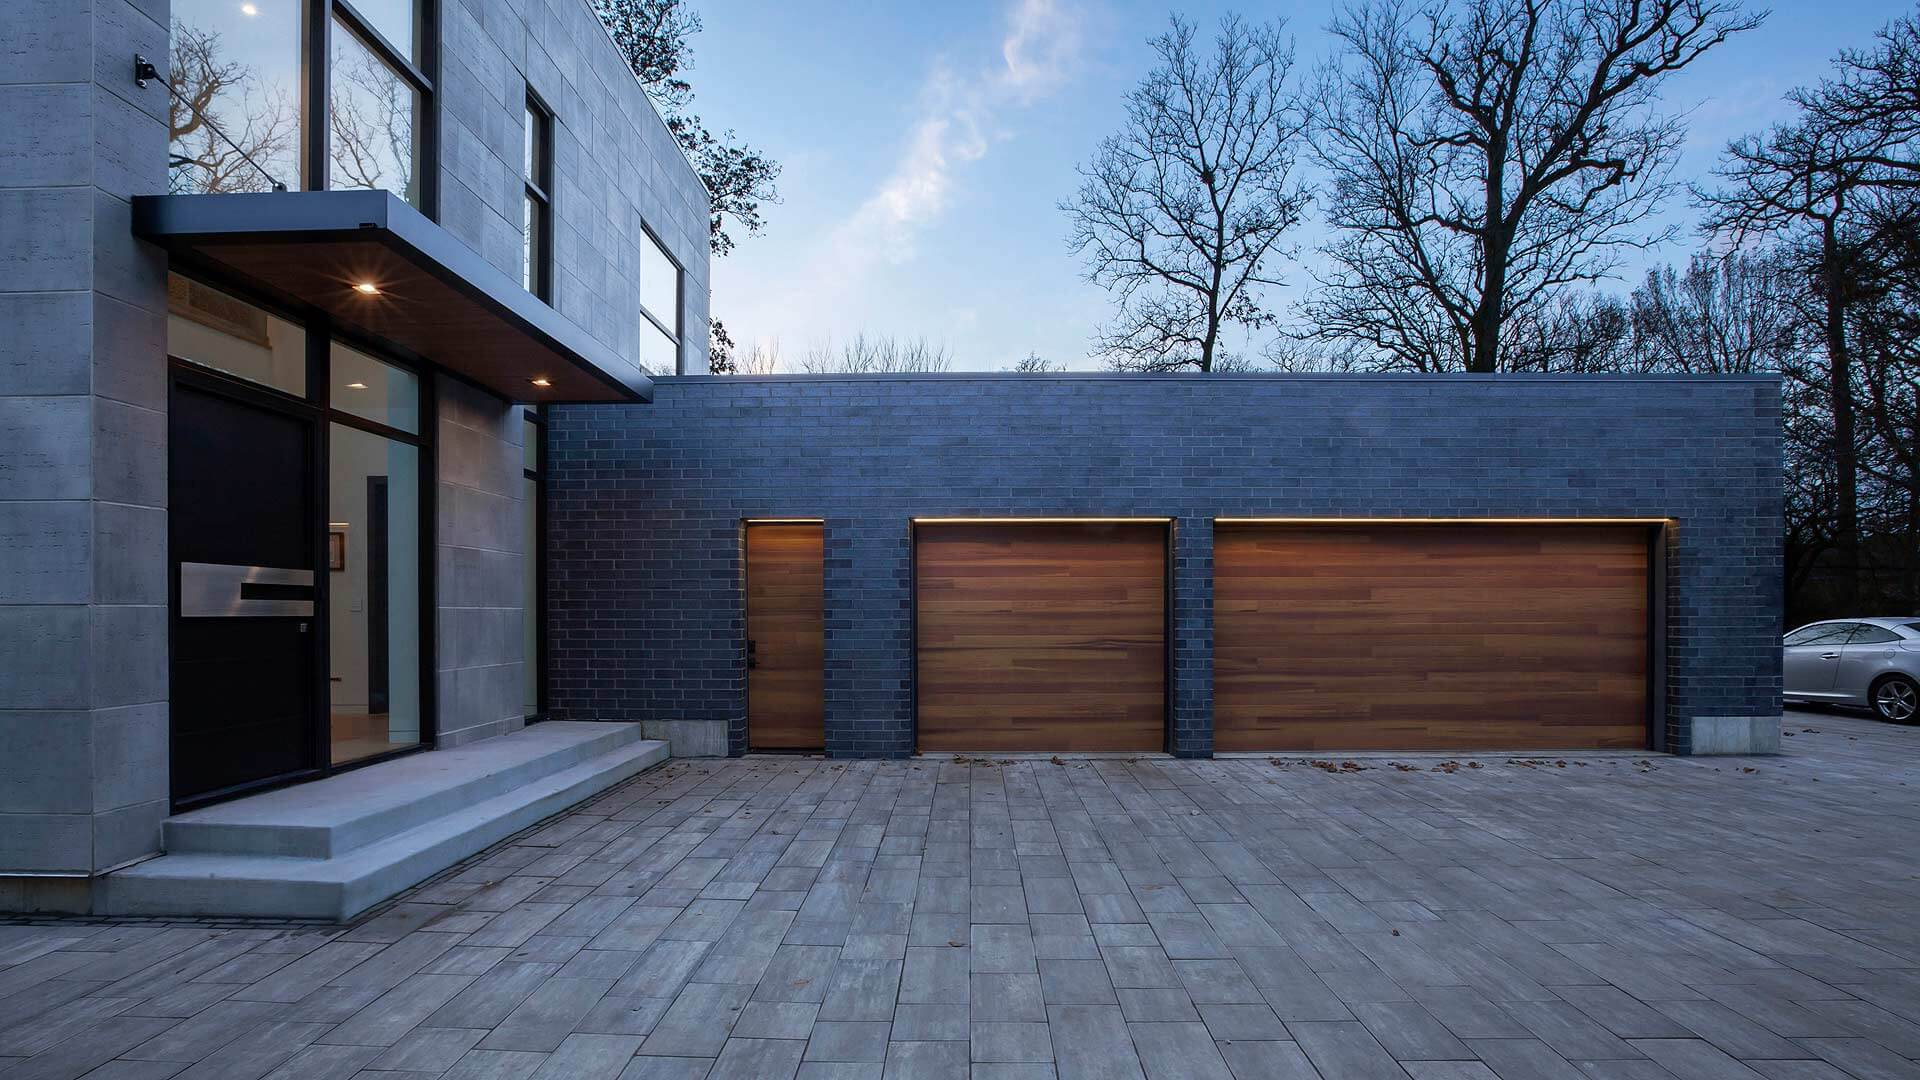 3-Car Garage features horizontal wood door slats (faux), dark gray brick, and buff pavers, and black-frame modern window frames - Minimalist Modern - Indian Head Park - Chicago, Illinois - HAUS | Architecture For Modern Lifestyles, Christopher Short, Indianapolis Architect with Joe Trojanowski